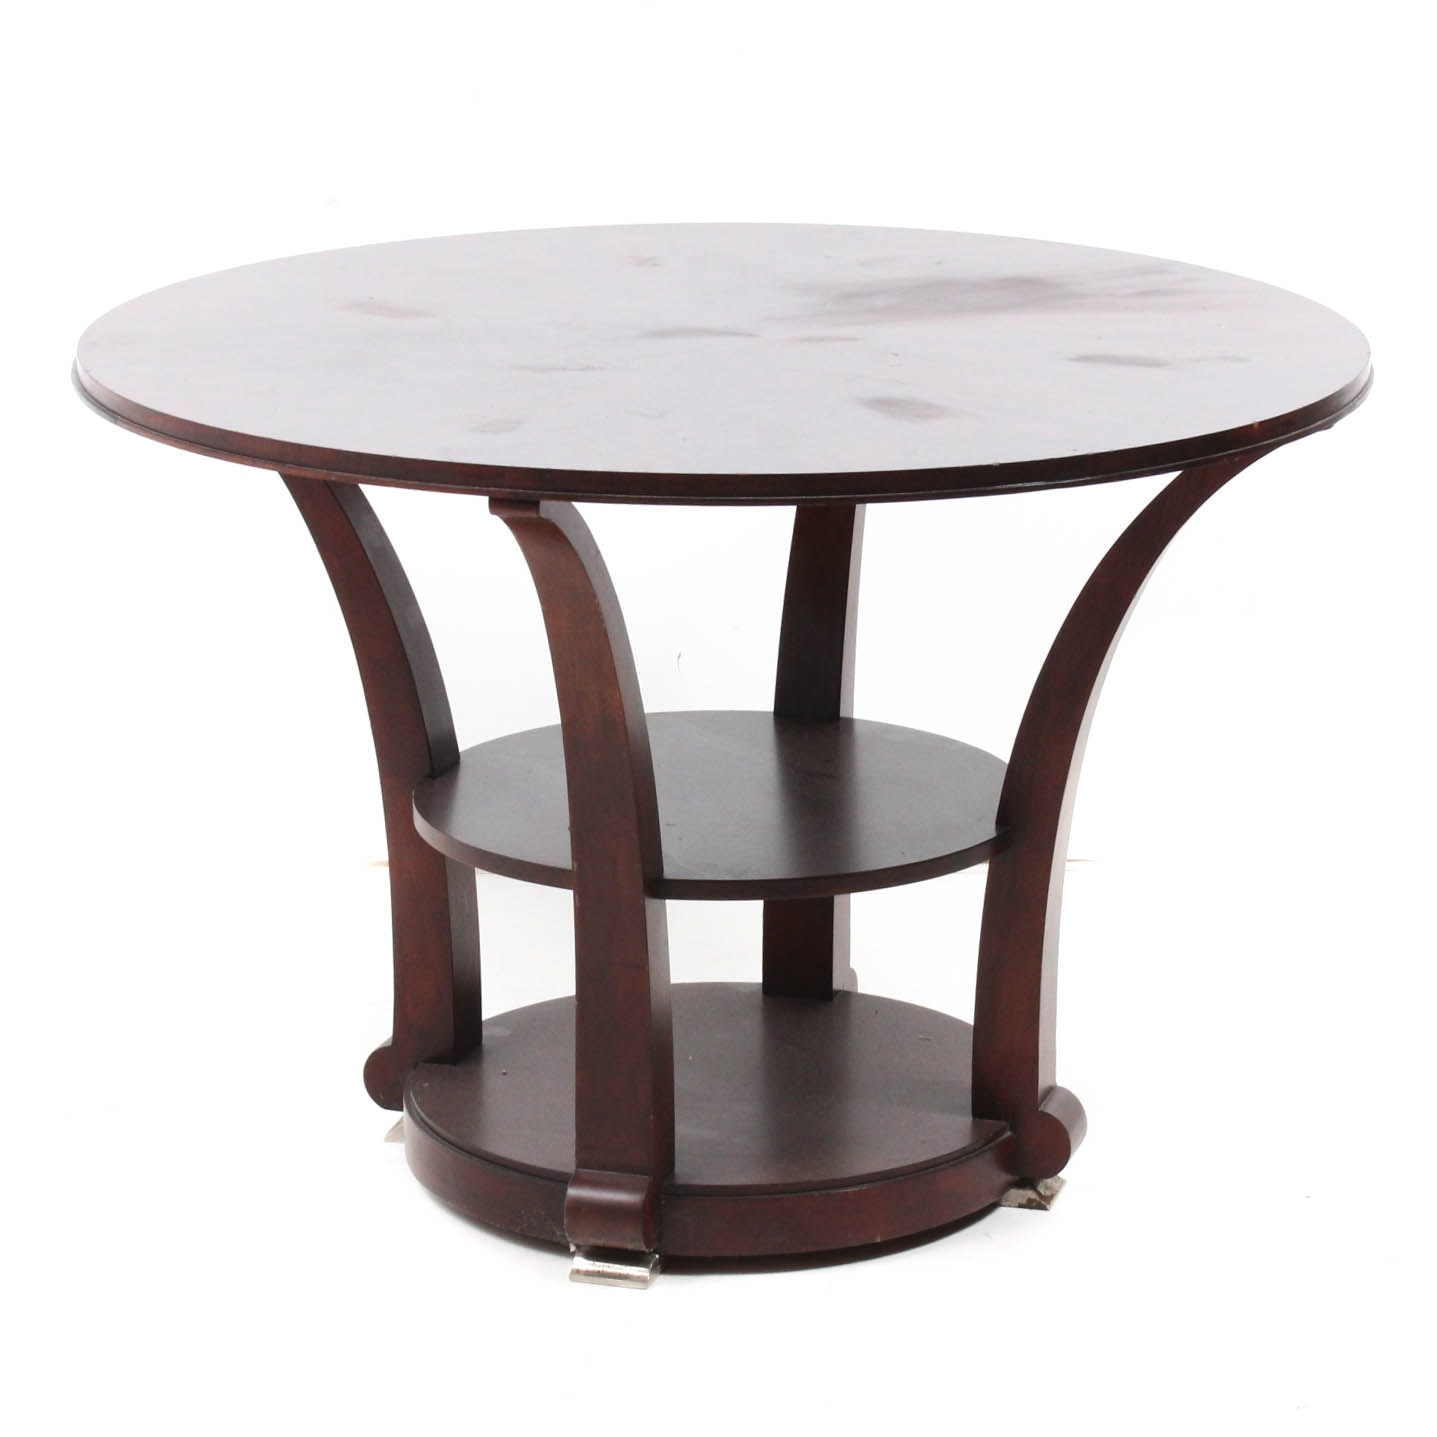 Modern Style Dining Table By Hekman Furniture